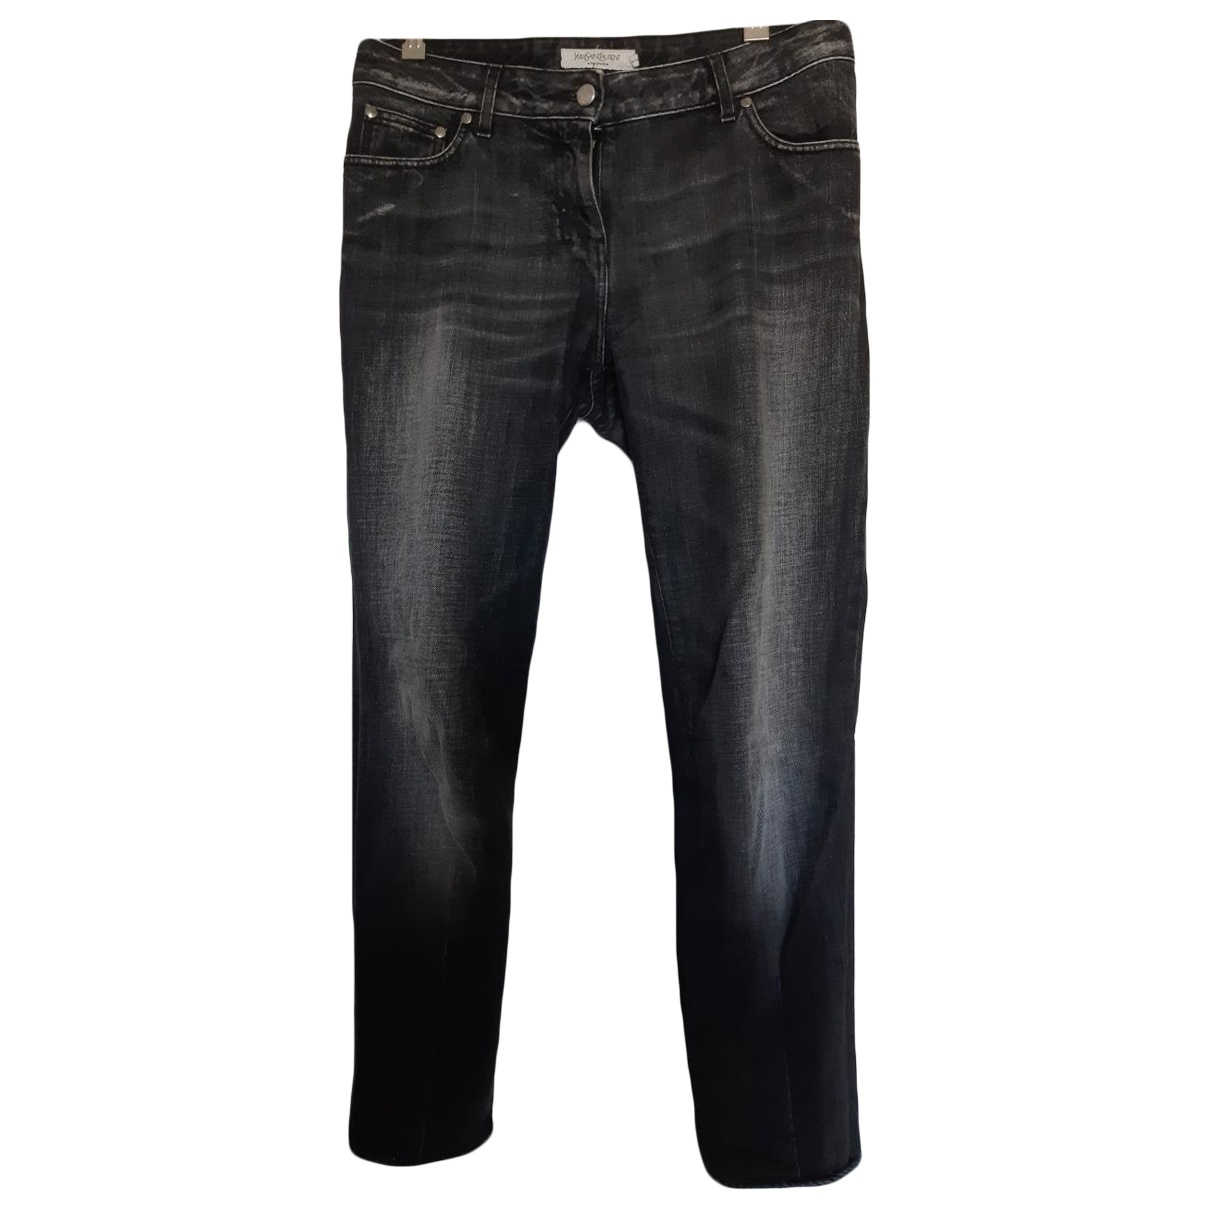 Yves Saint Laurent \N Anthracite Cotton Jeans for Women 30 US